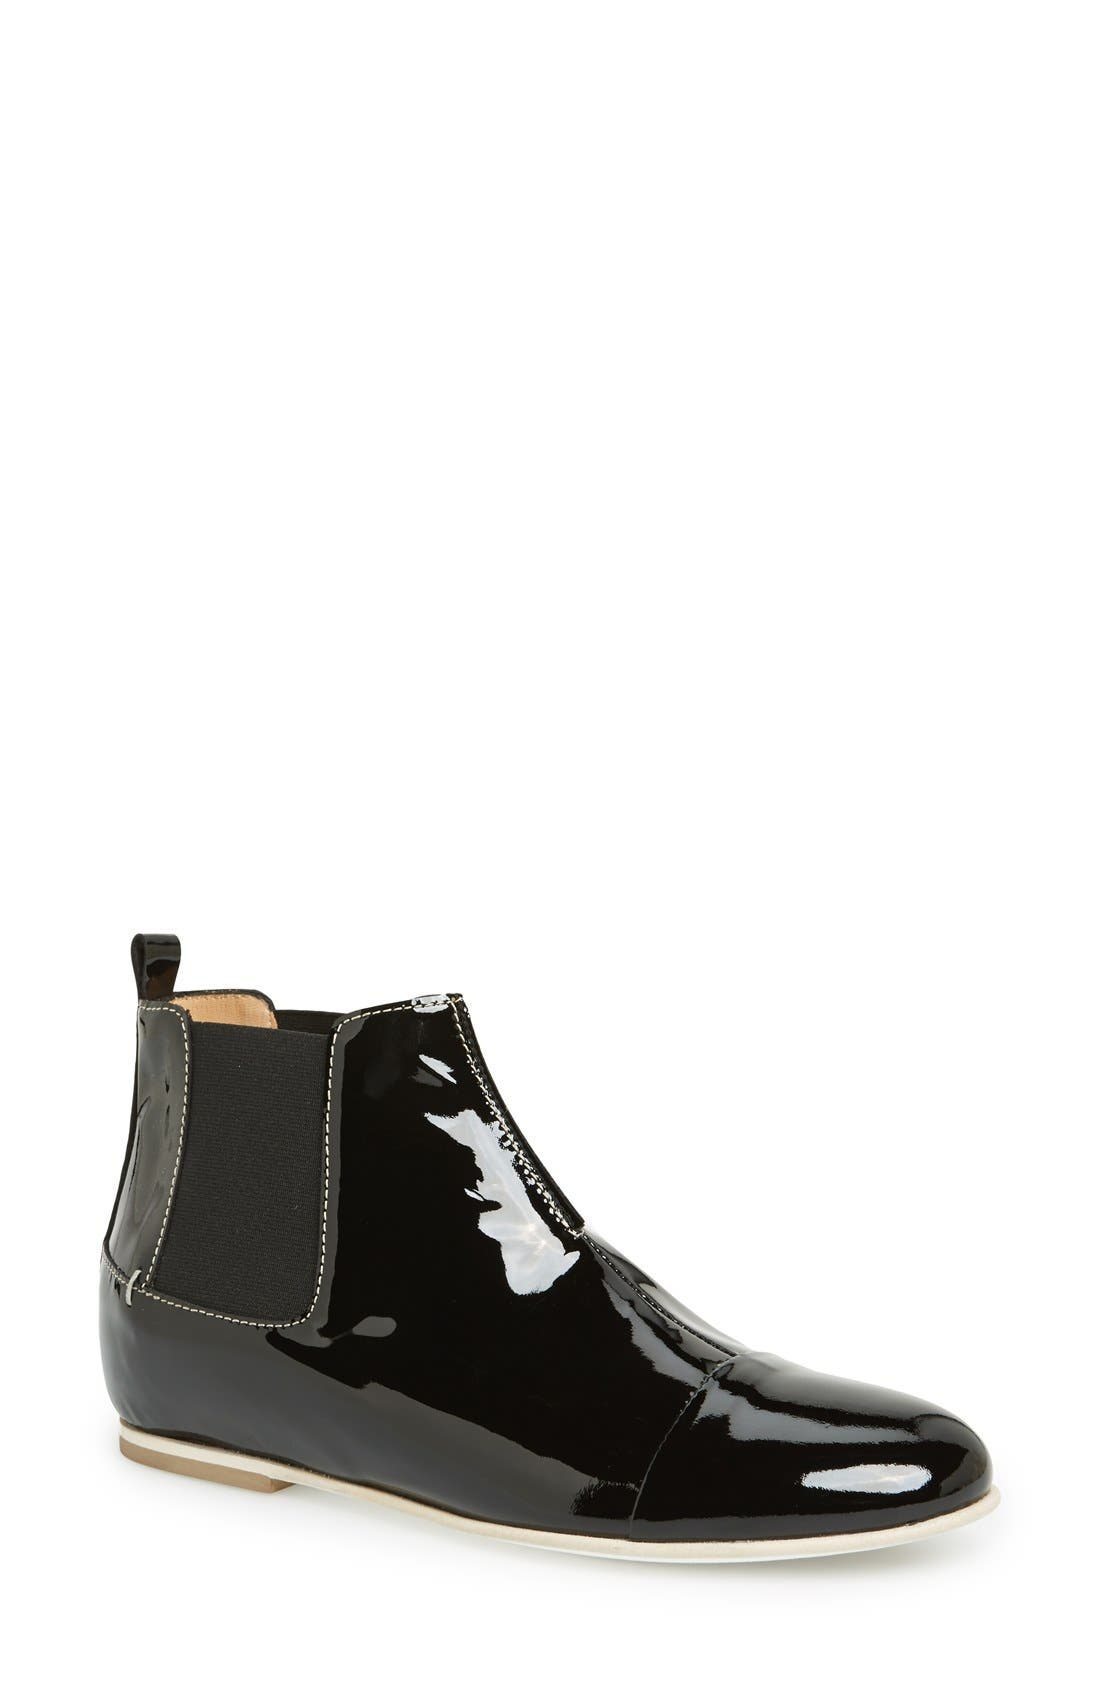 Alternate Image 1 Selected - Aquatalia by Marvin K. 'Chime' Weatherproof Patent Leather Chelsea Boot (Women)